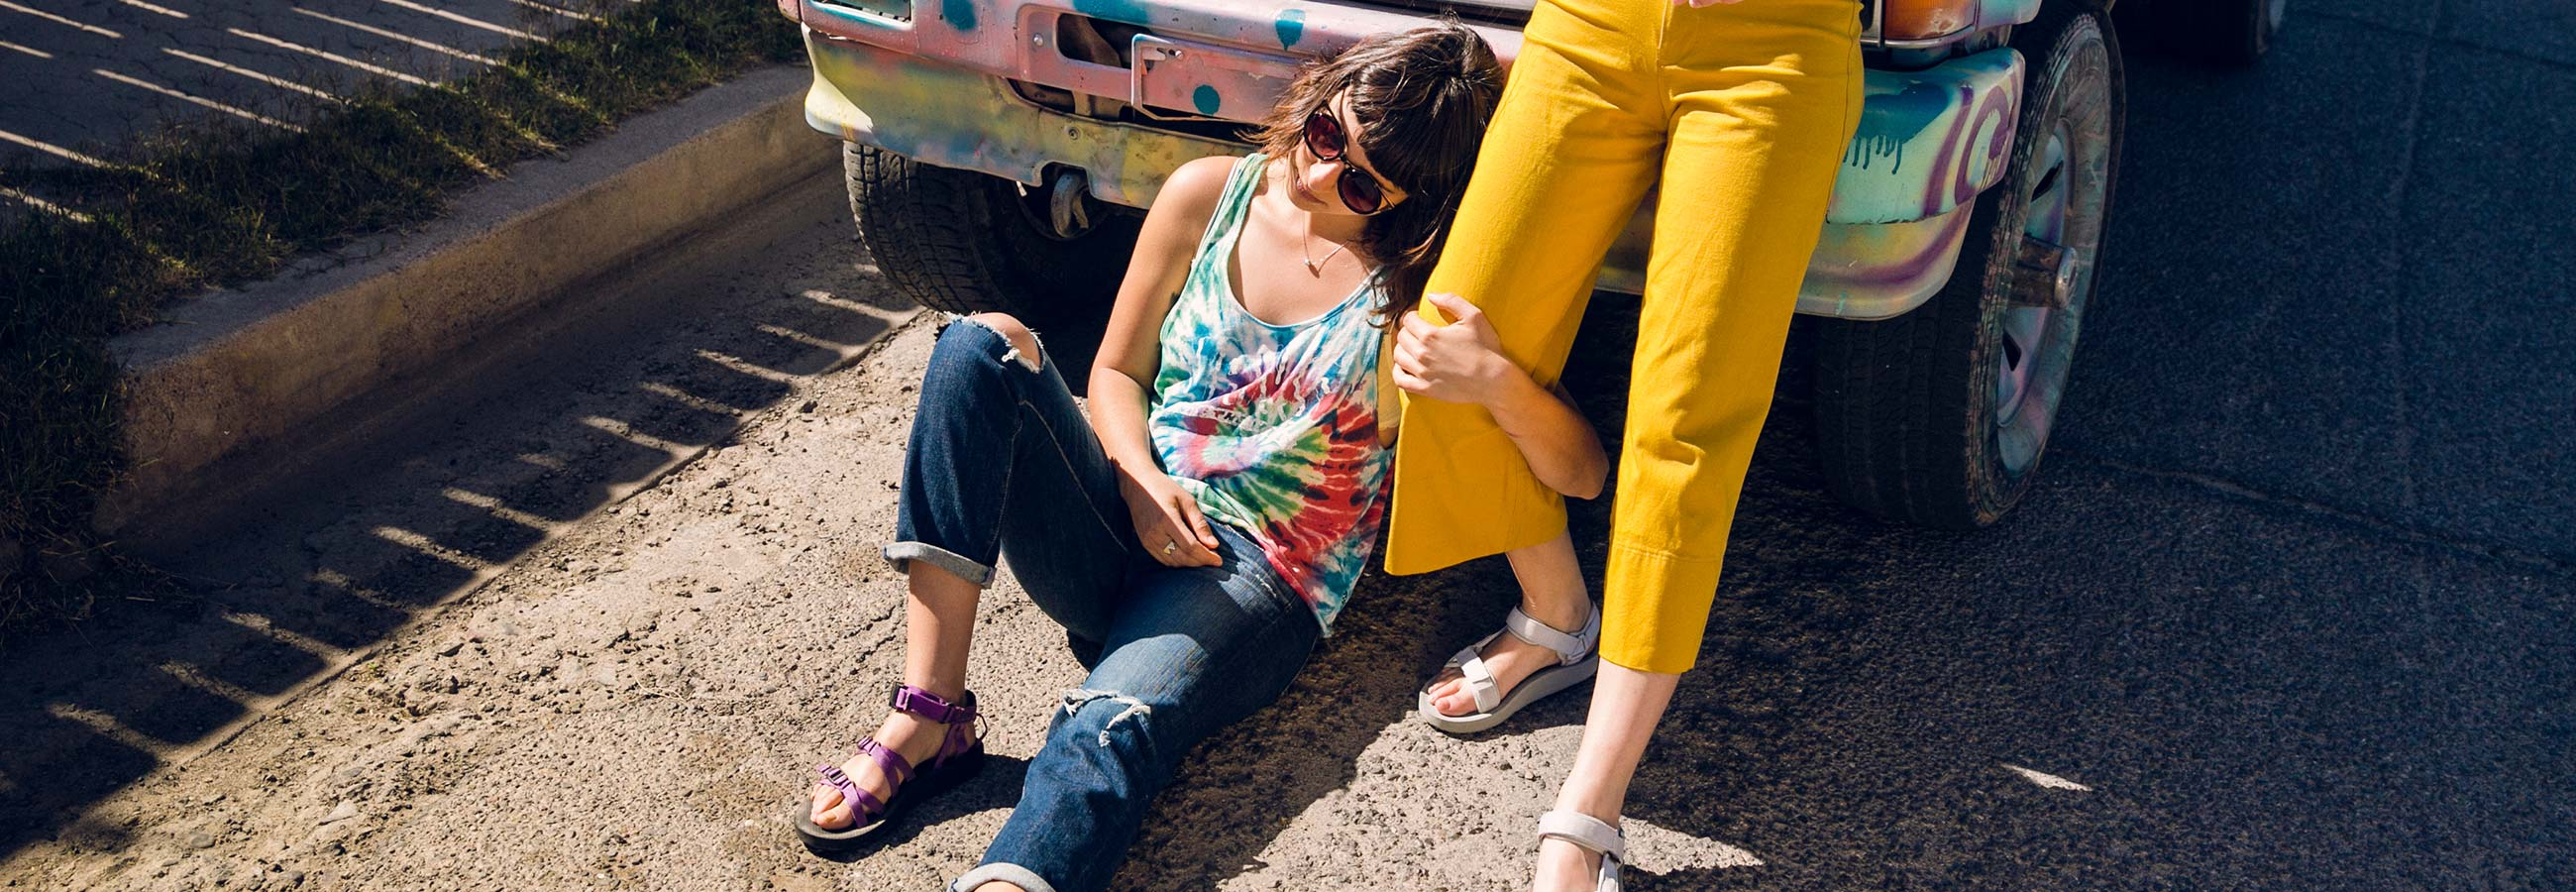 Two women leaning against a car wearing Teva sandals.